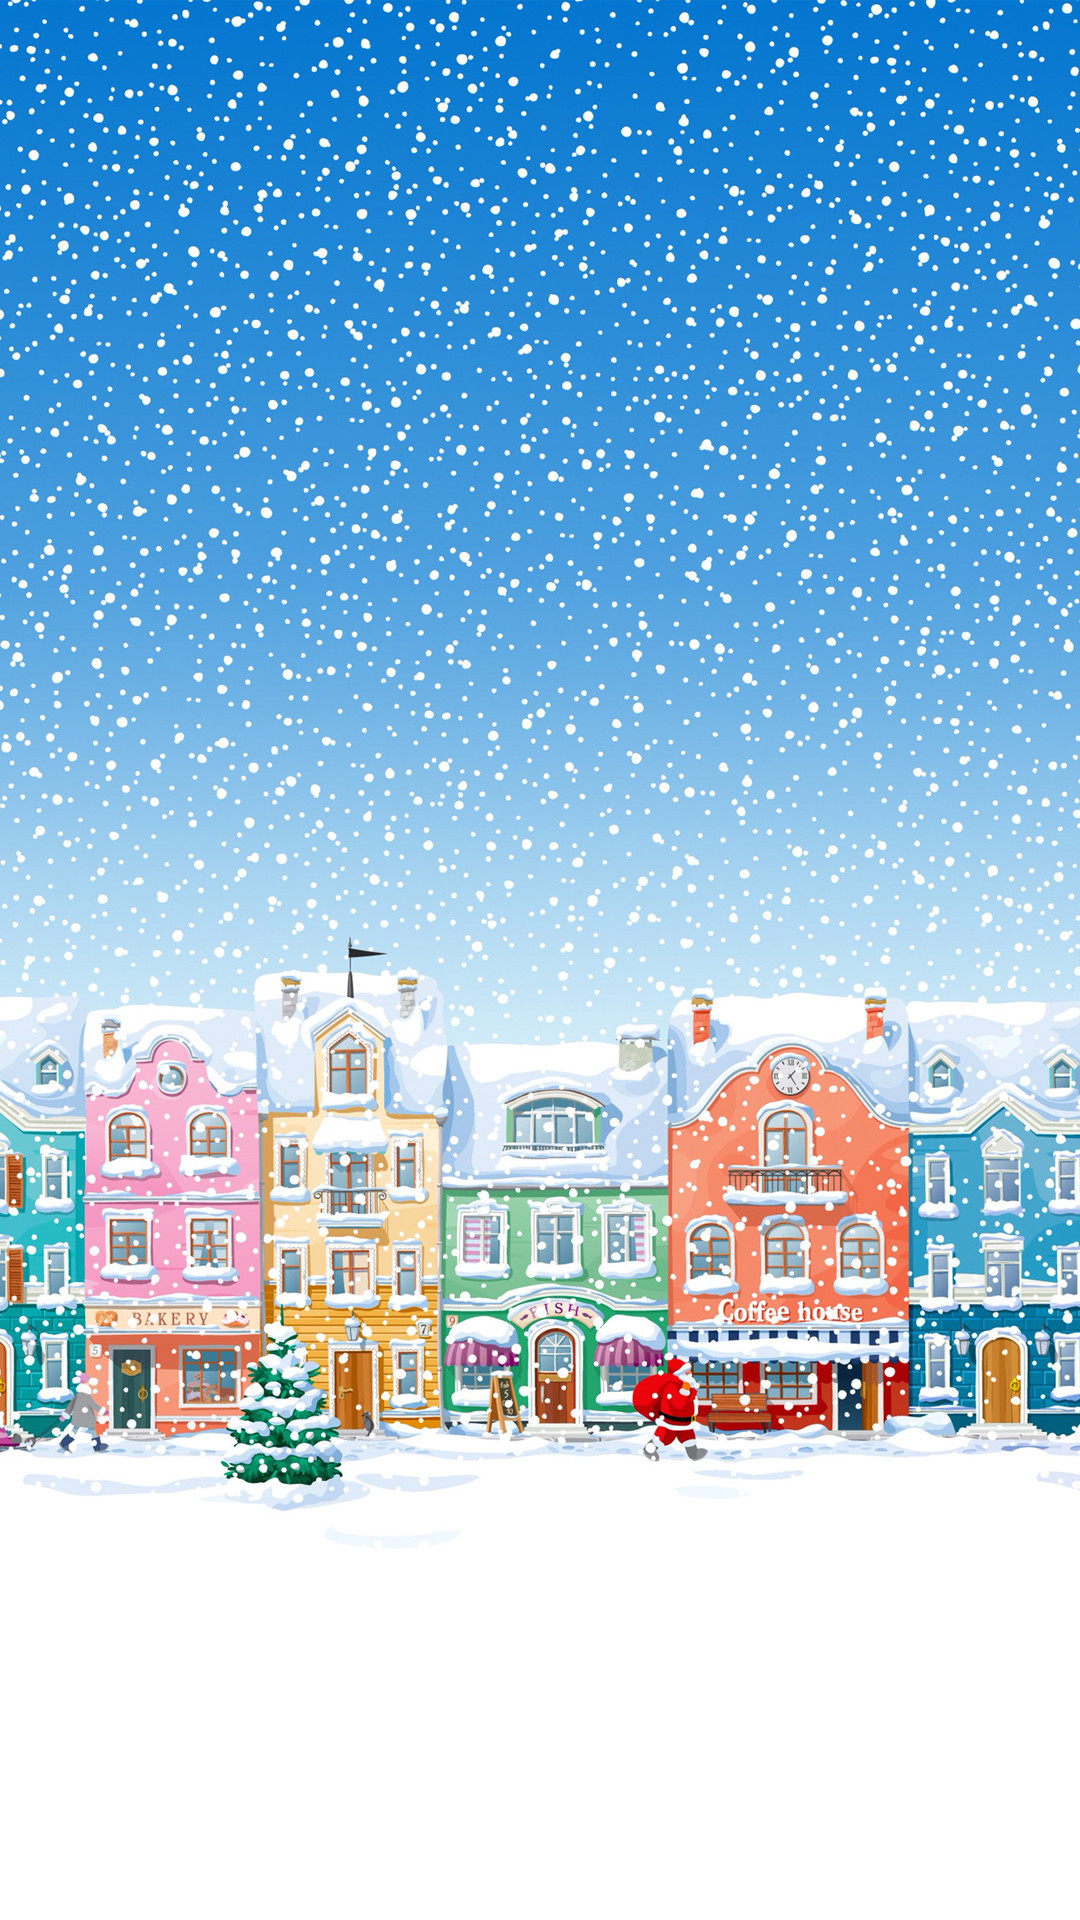 1080x1920 Snowy Town Santa Claus Delivering Christmas Presents iPhone 6 wallpaper.  Winter WallpapersWallpapers ...